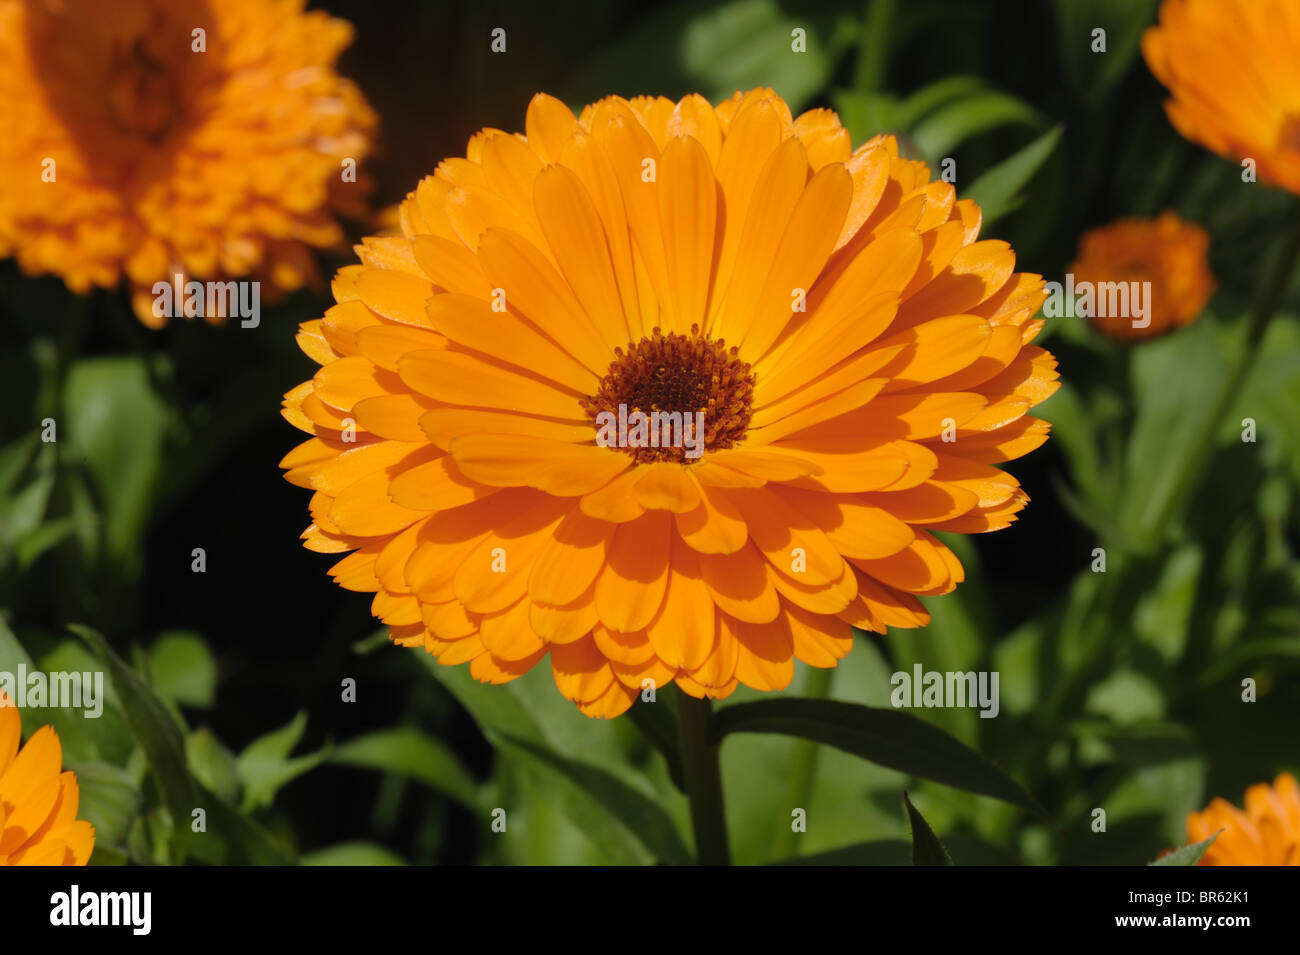 common marigold calendula officinalis orange flower a garden stock photo royalty free image. Black Bedroom Furniture Sets. Home Design Ideas